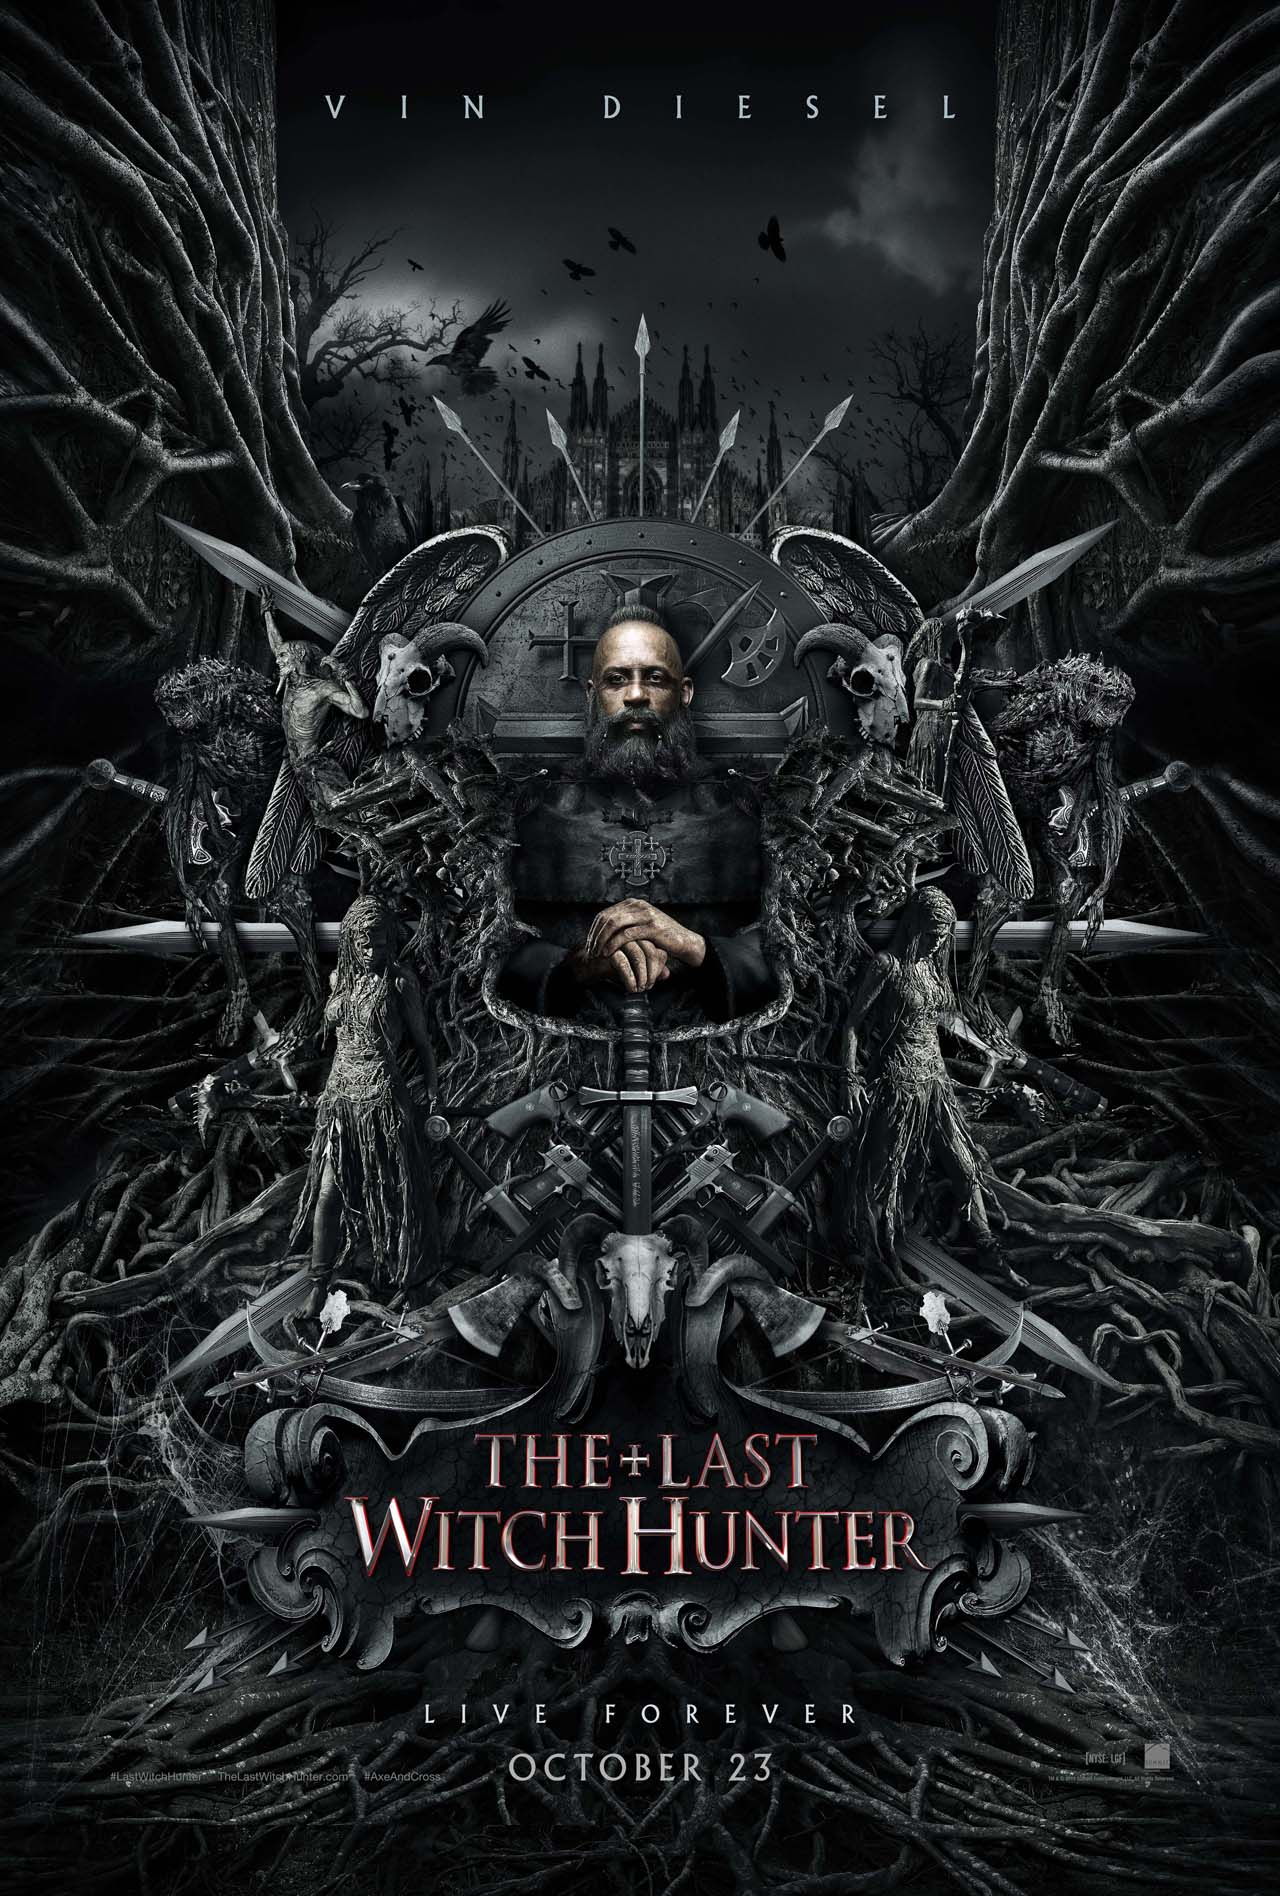 The Last Witch Hunter review: 99 problems but a witch ain't one